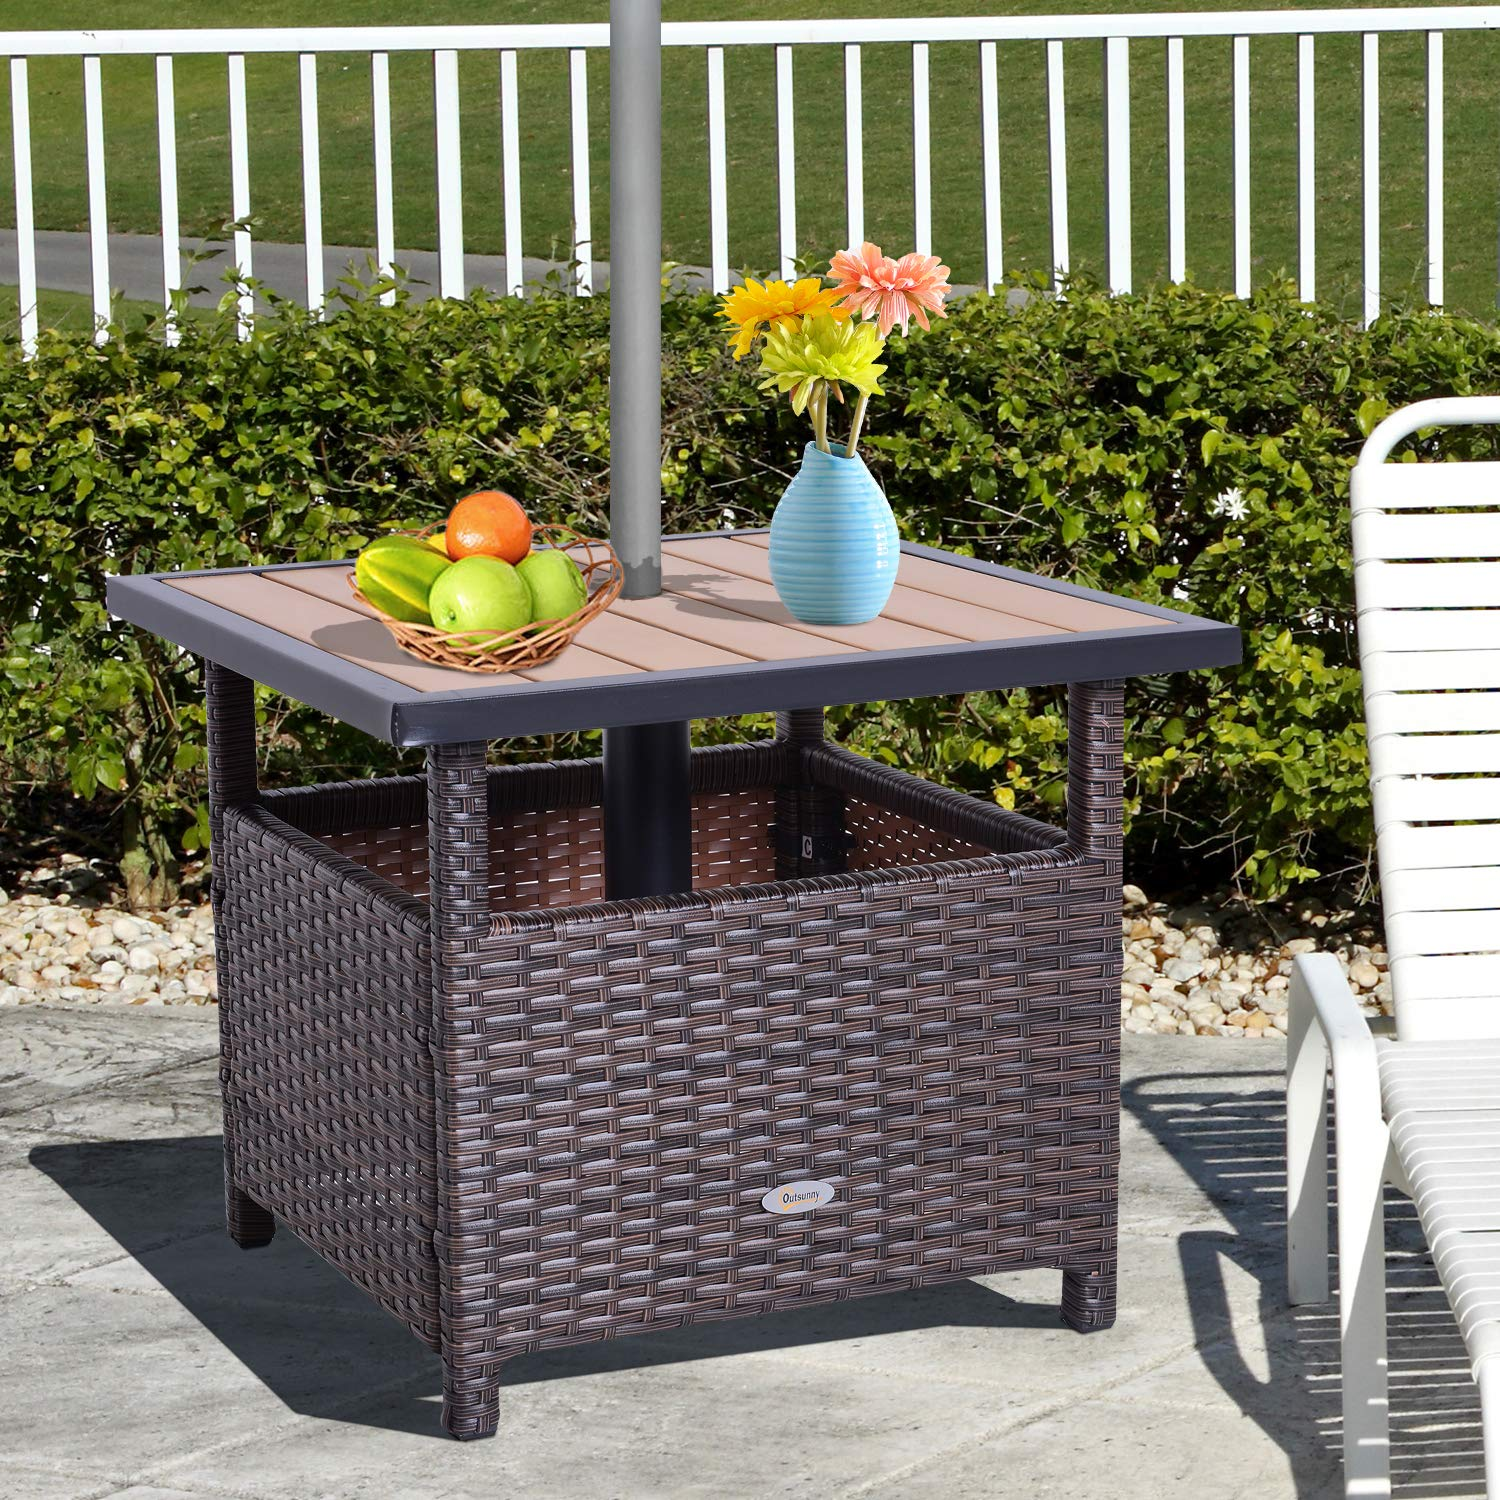 Outsunny 22 Steel PE Rattan Wicker Outdoor Patio Accent Table with Umbrella Insert